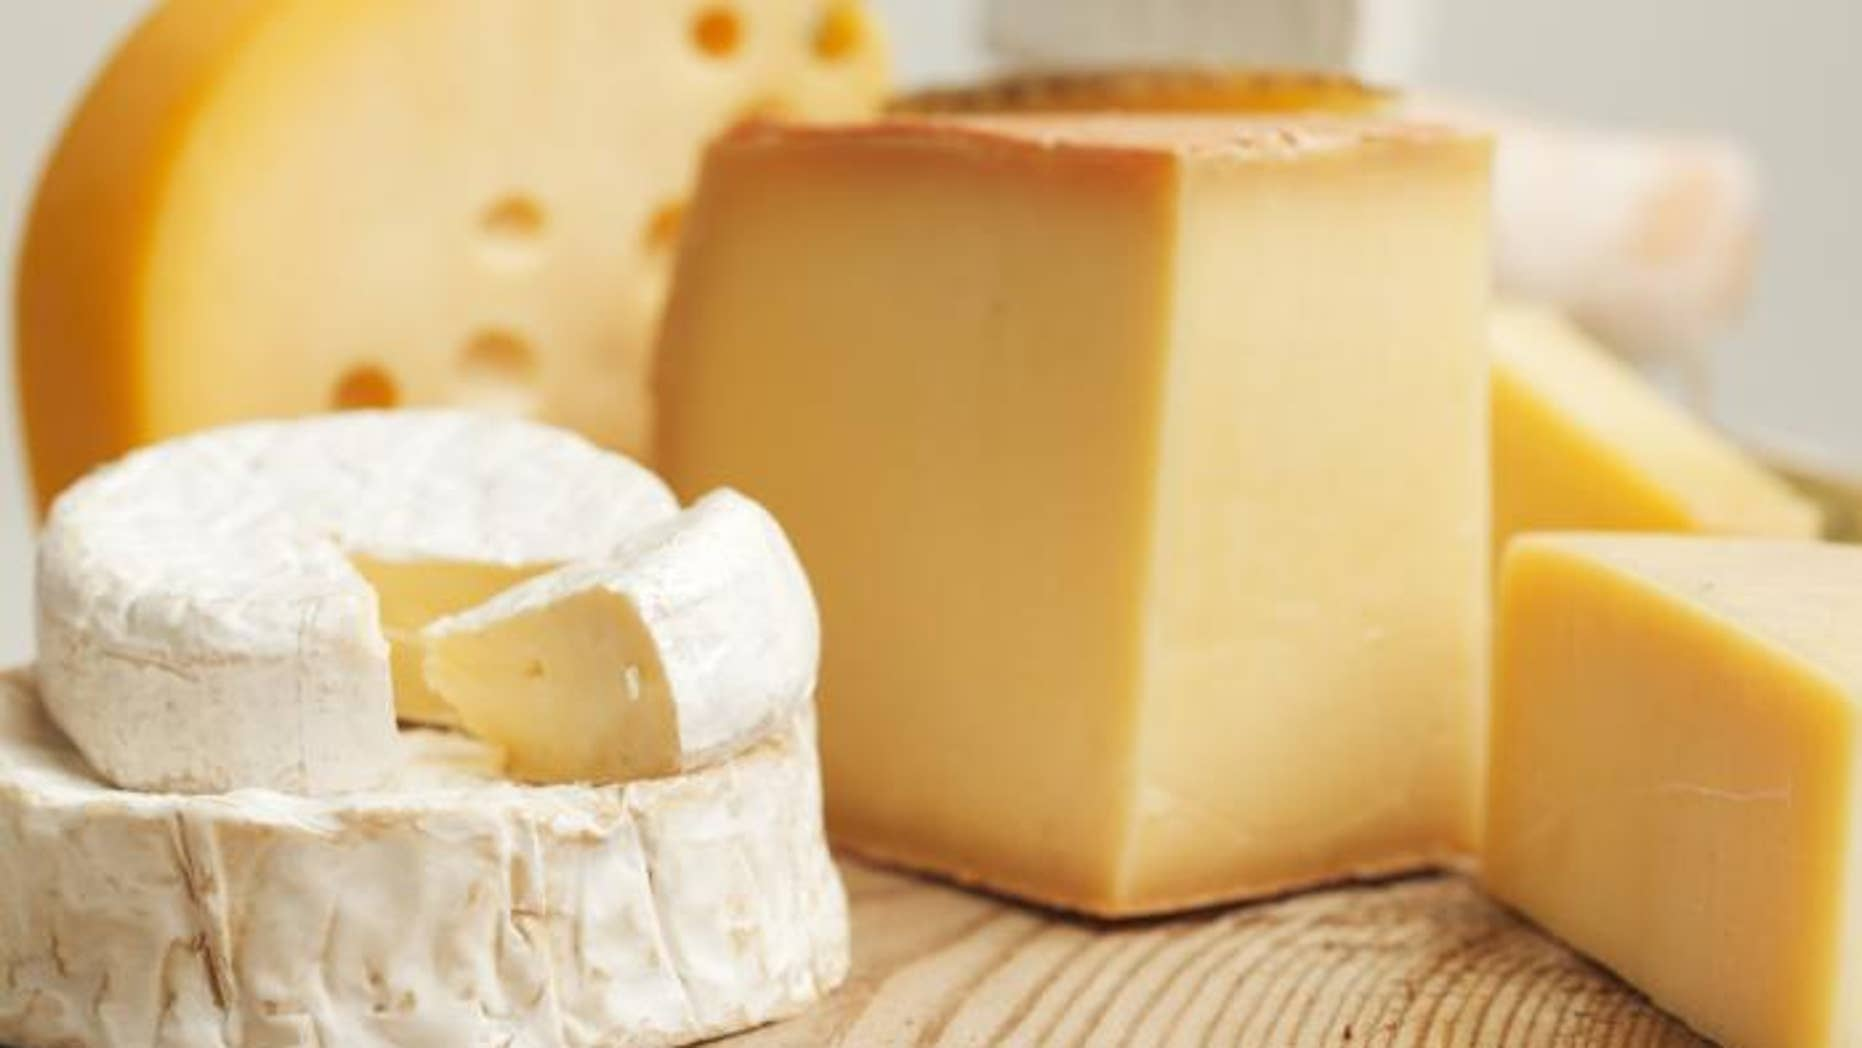 Many traditional cheesemakers age their product on wood boards.